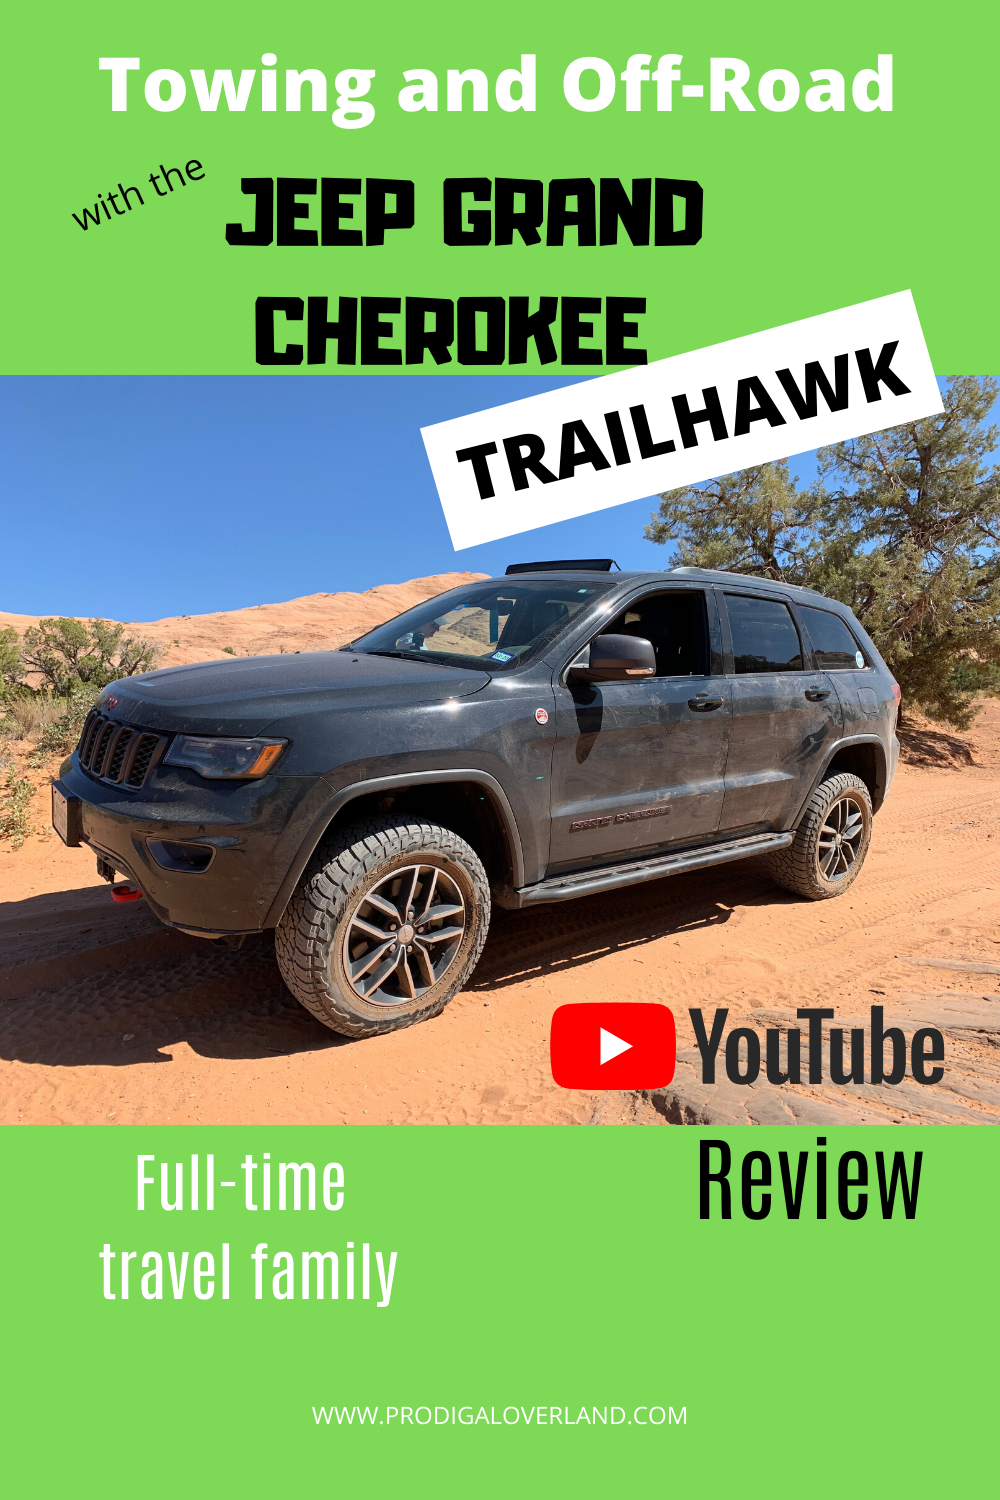 Jeep Grand Cherokee Towing And Off Roading Review In 2020 Jeep Grand Cherokee Offroad Jeep Offroad